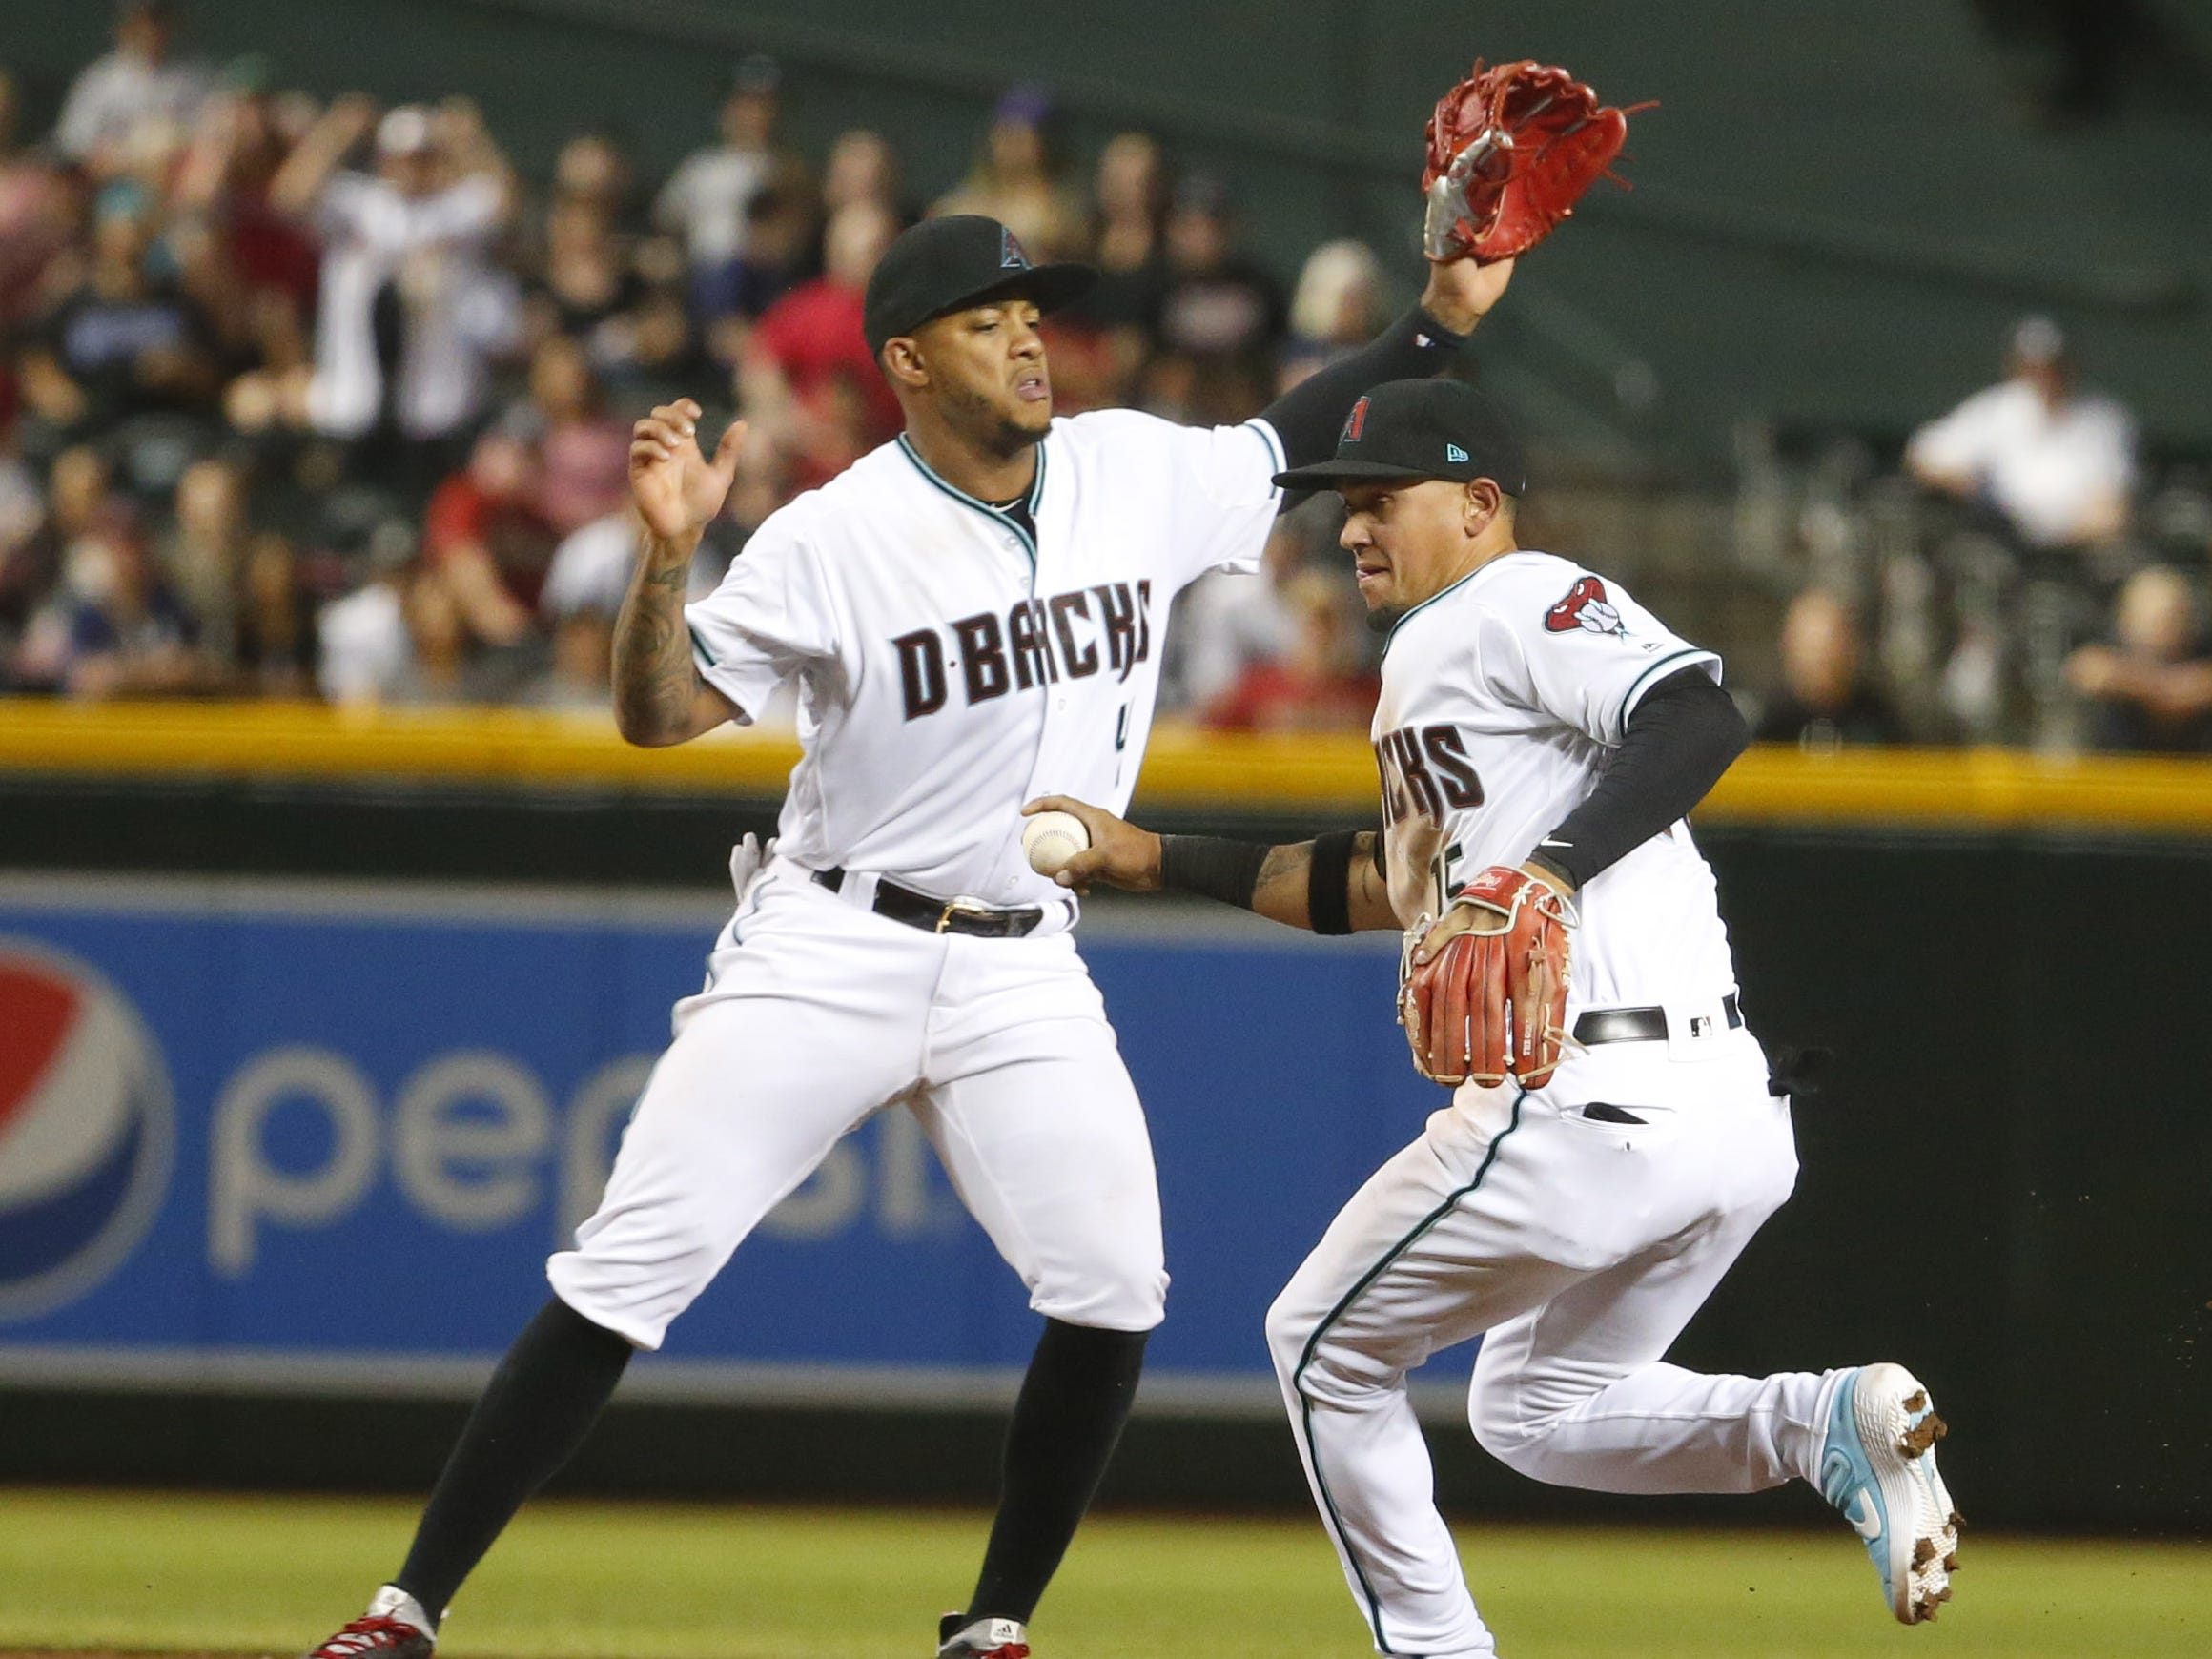 Arizona Diamondbacks Ildemaro Vargas throws to first to end the game against the Boston Red Sox at Chase Field in Phoenix on April 5.